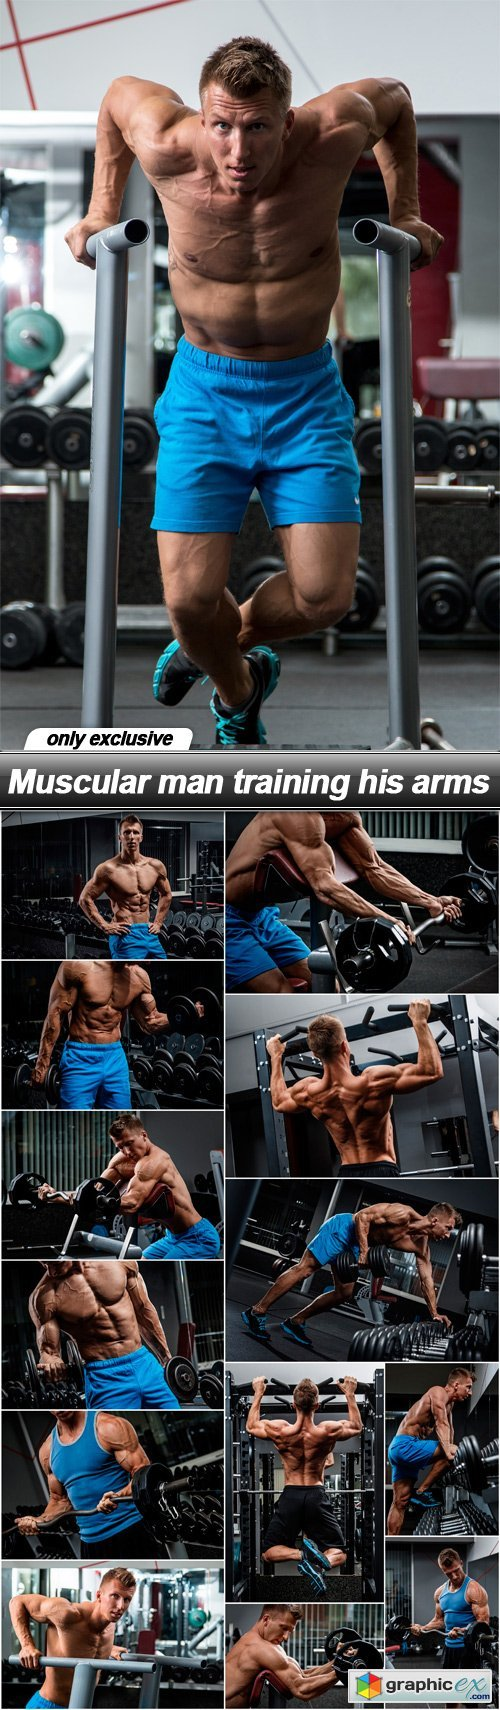 Muscular man training his arms - 14 UHQ JPEG